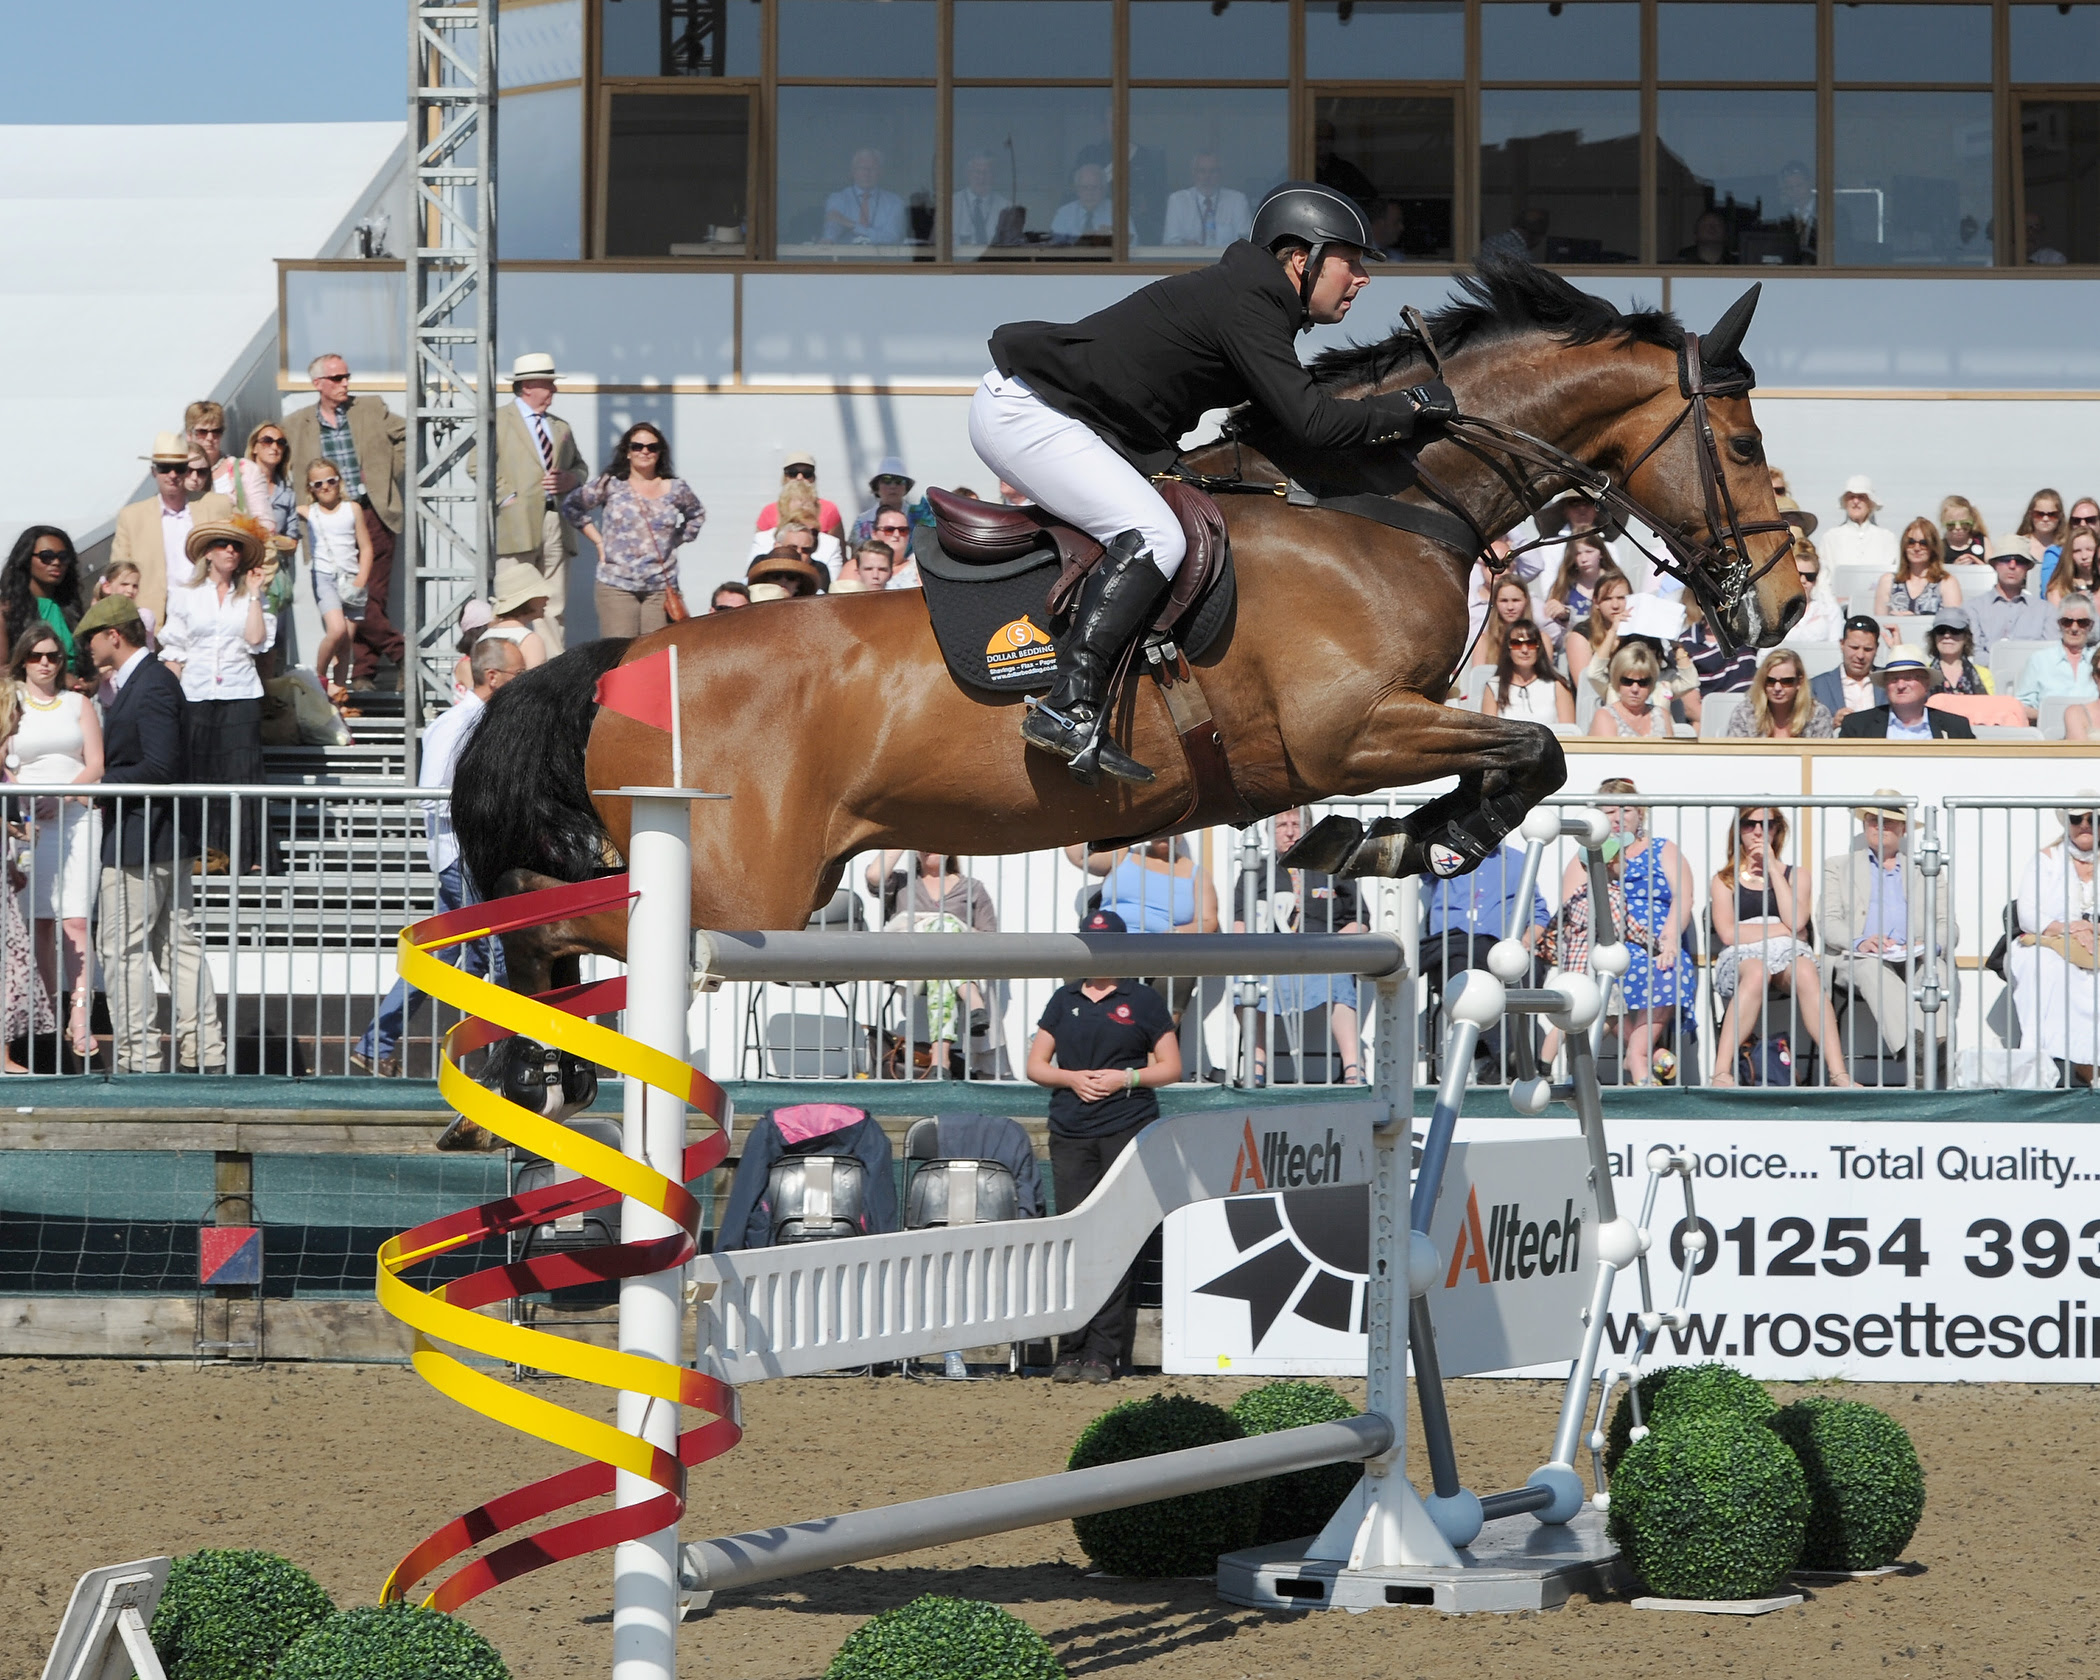 Royal Windsor Horse Show Live Streaming The Gaitpost